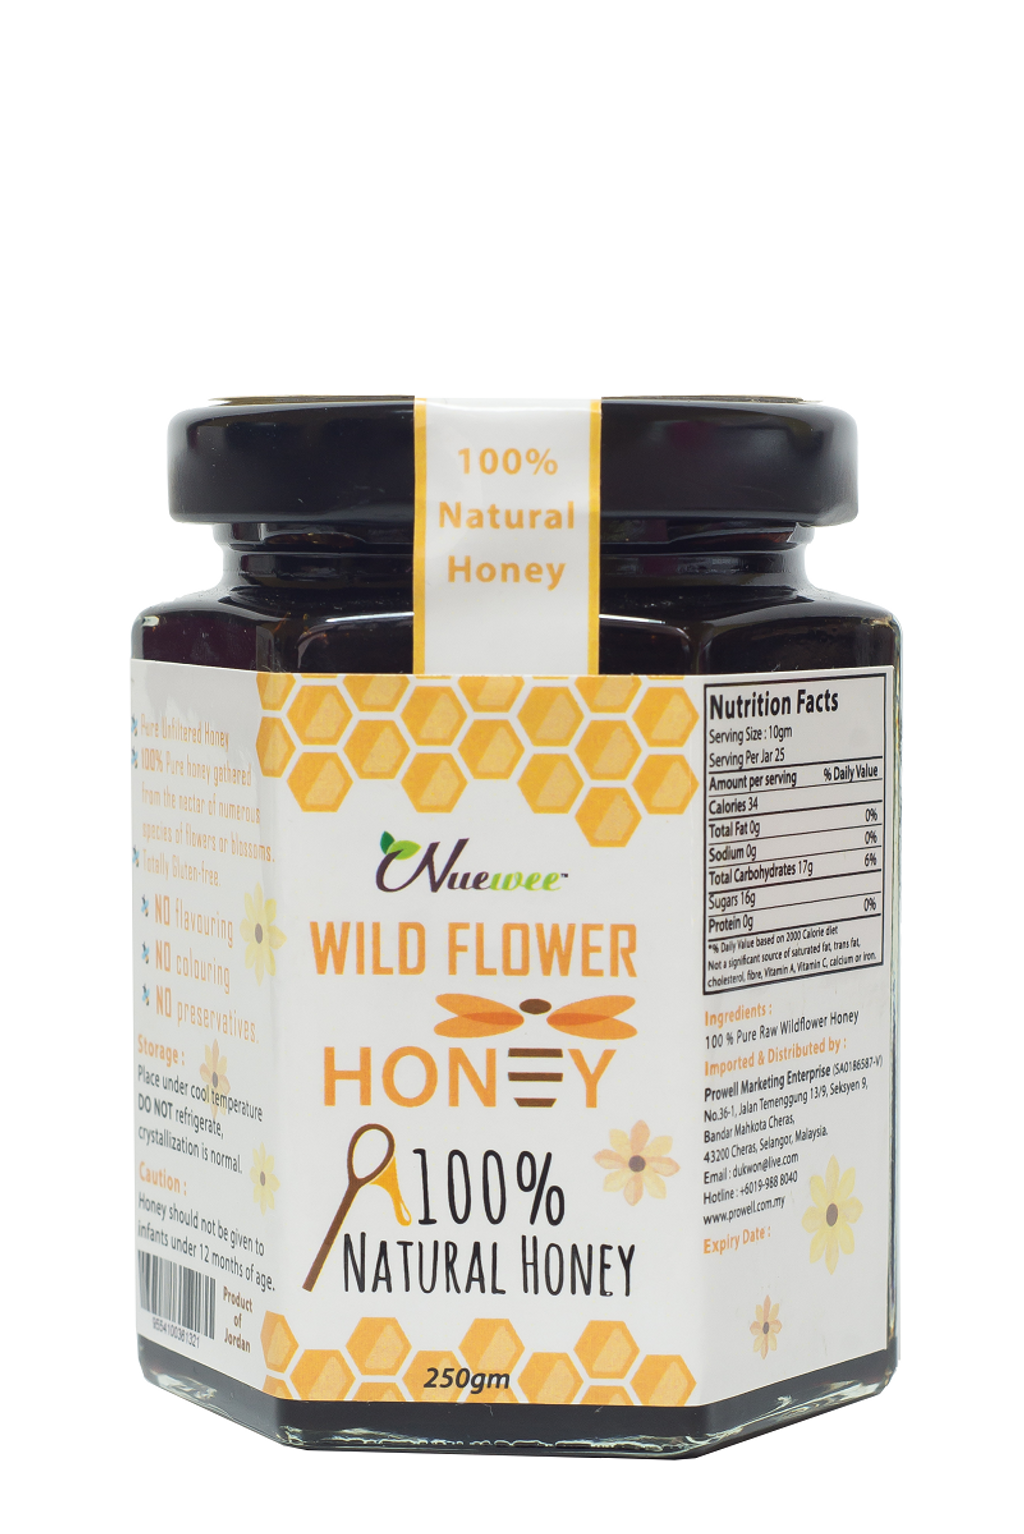 Nuewee-Natural-Wold-Flower-Honey.png